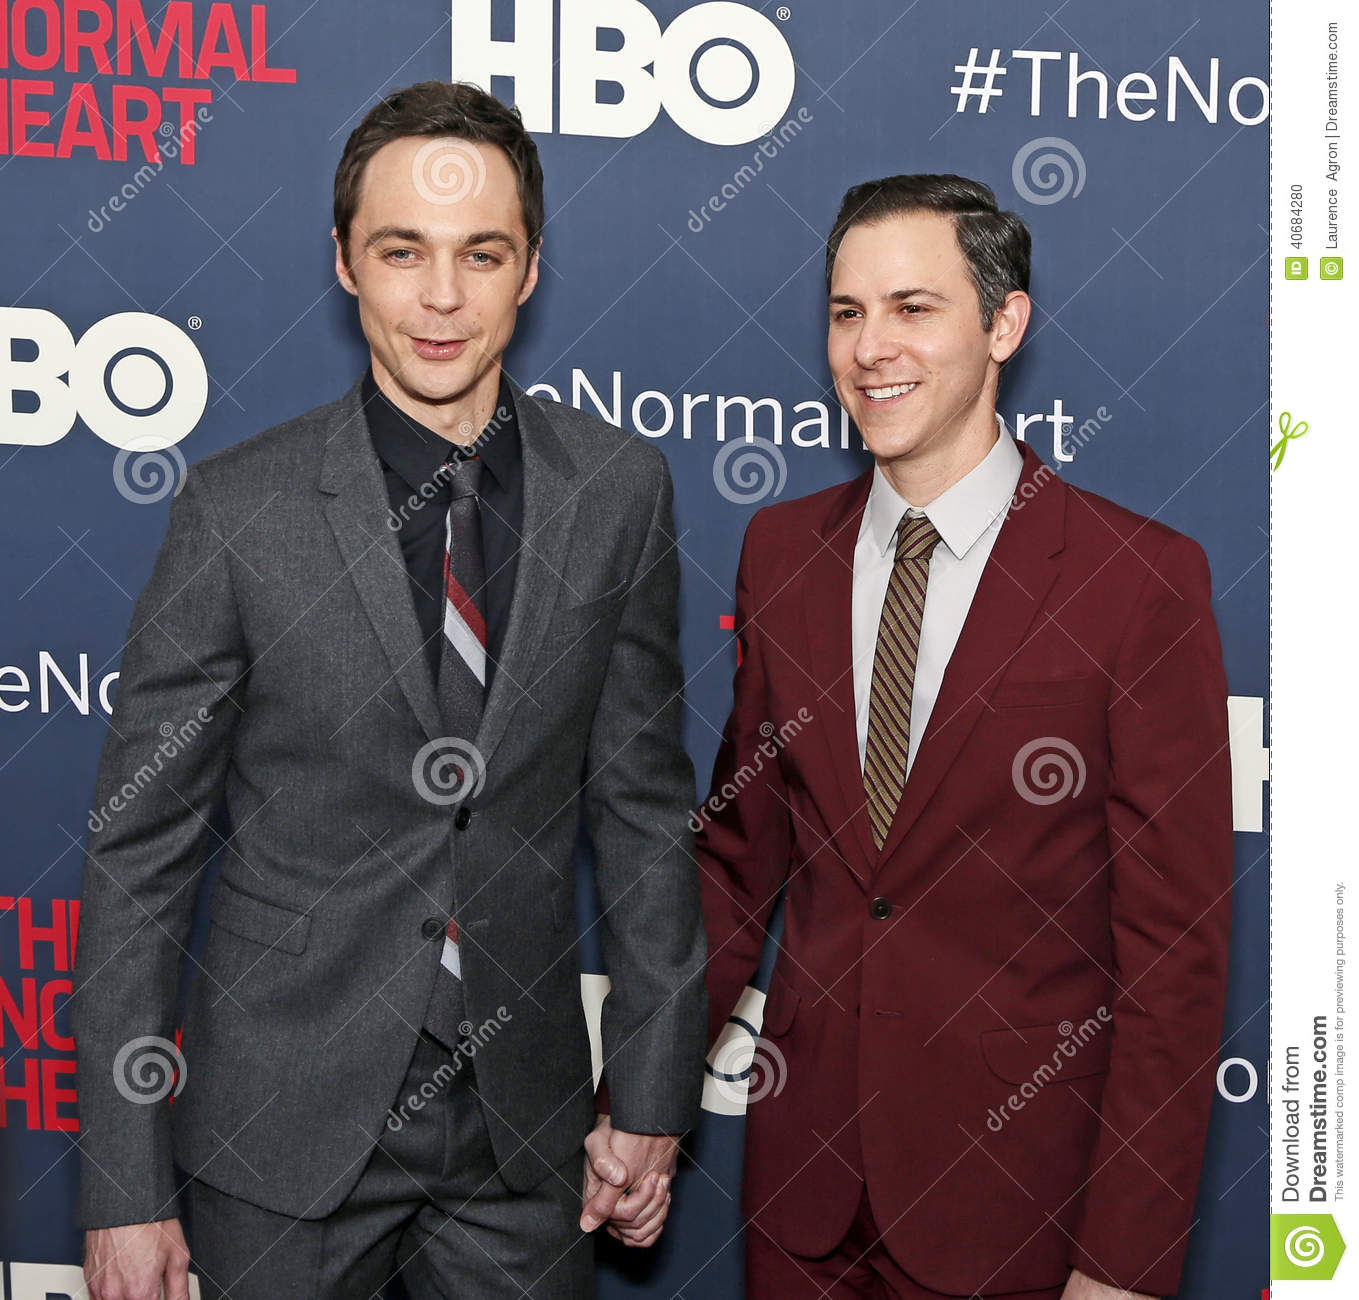 Editorial Image: Jim Parsons and Todd Spiewak